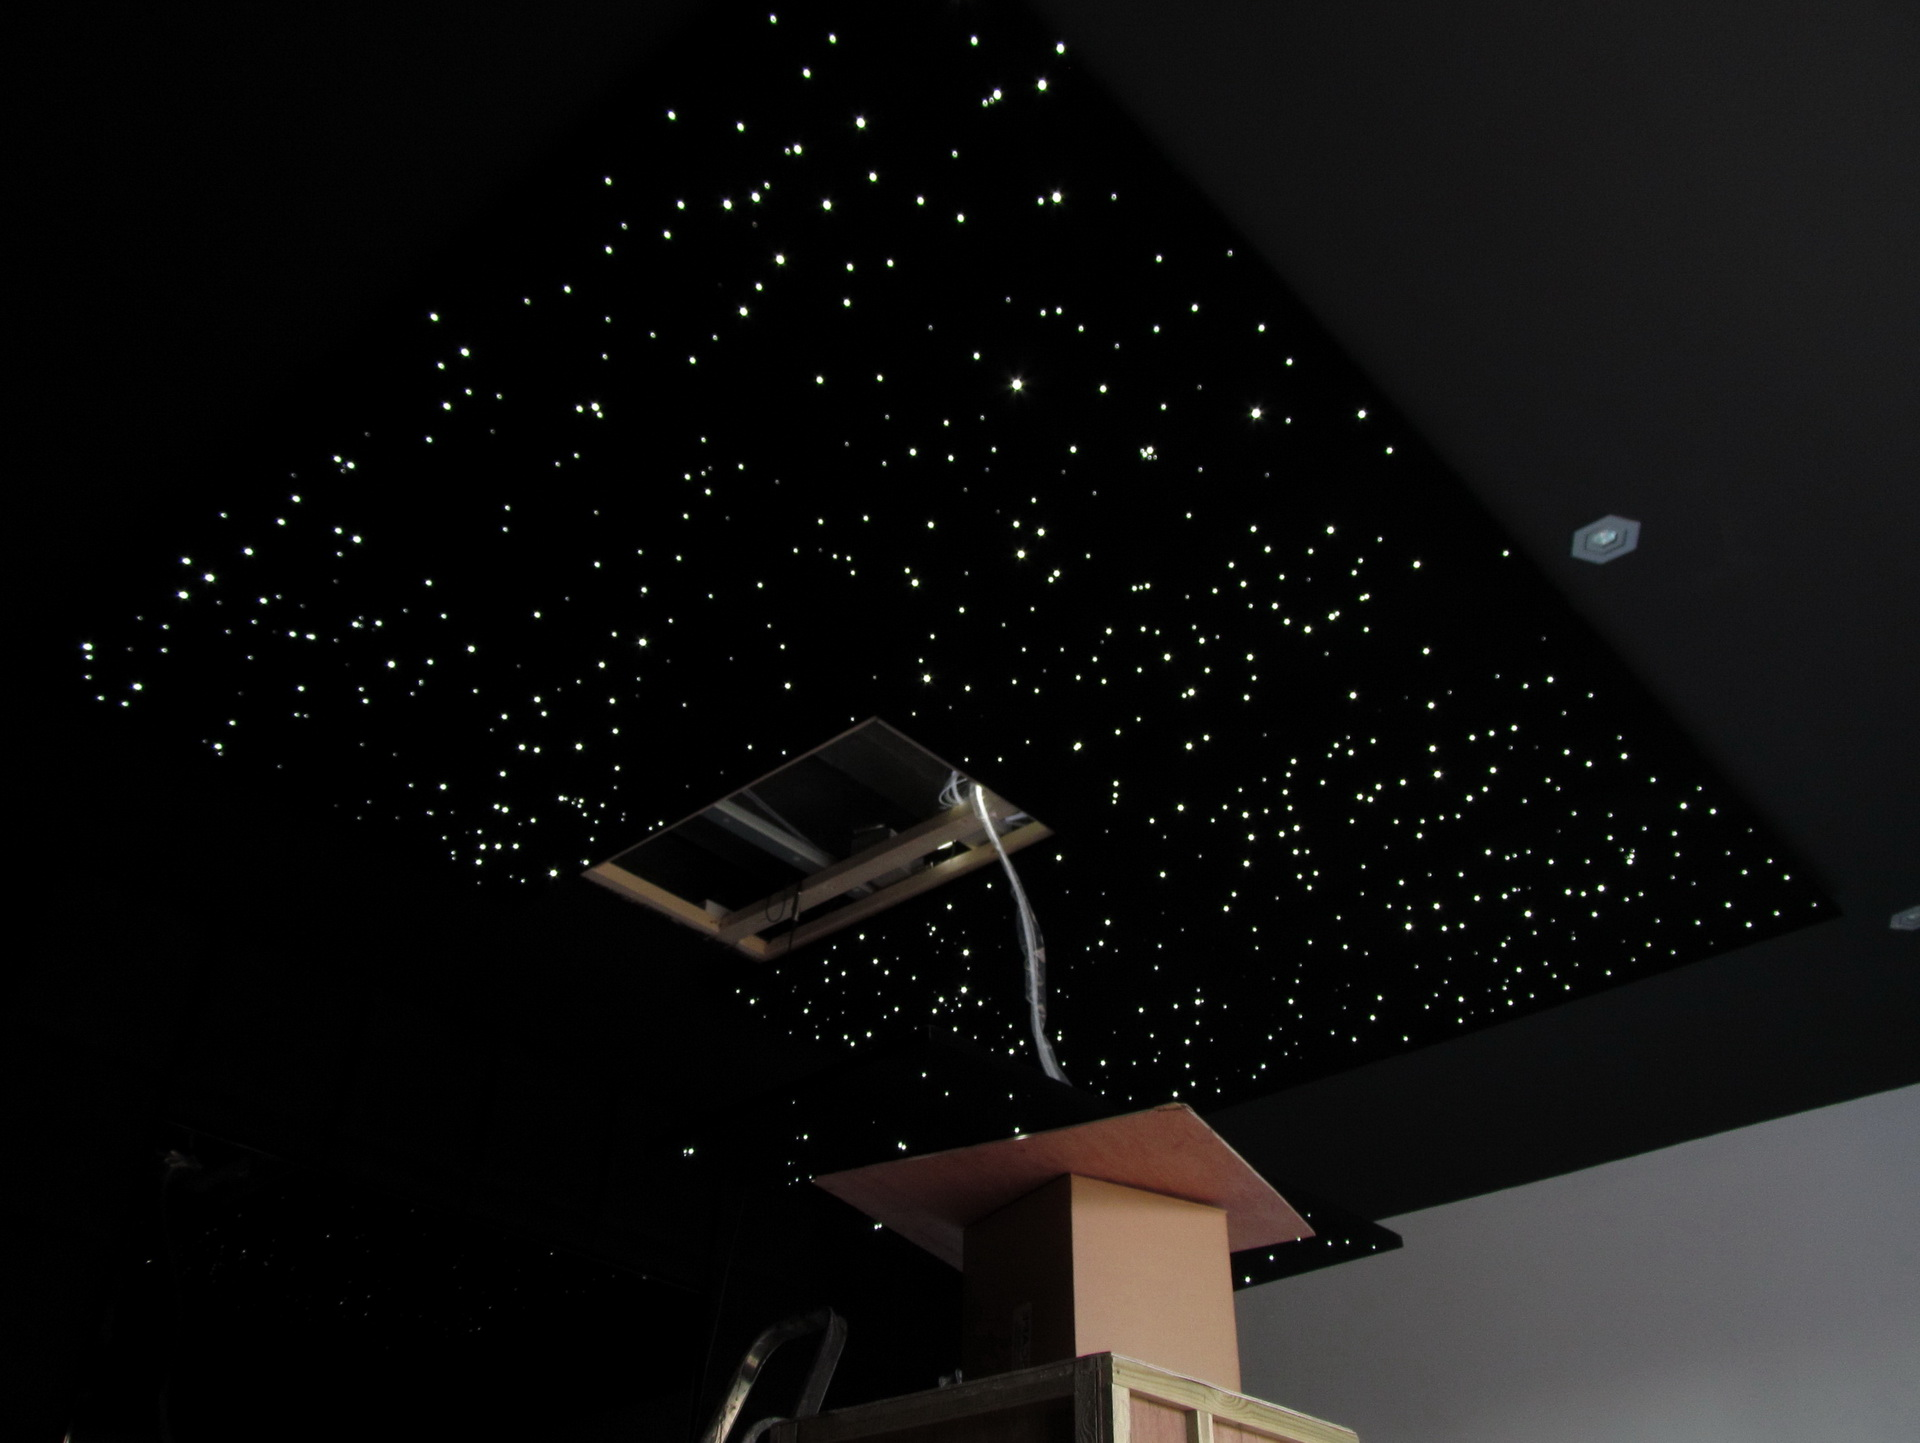 Car Ceiling Led Lights Stars : Led ceiling star lights reasons to buy warisan lighting